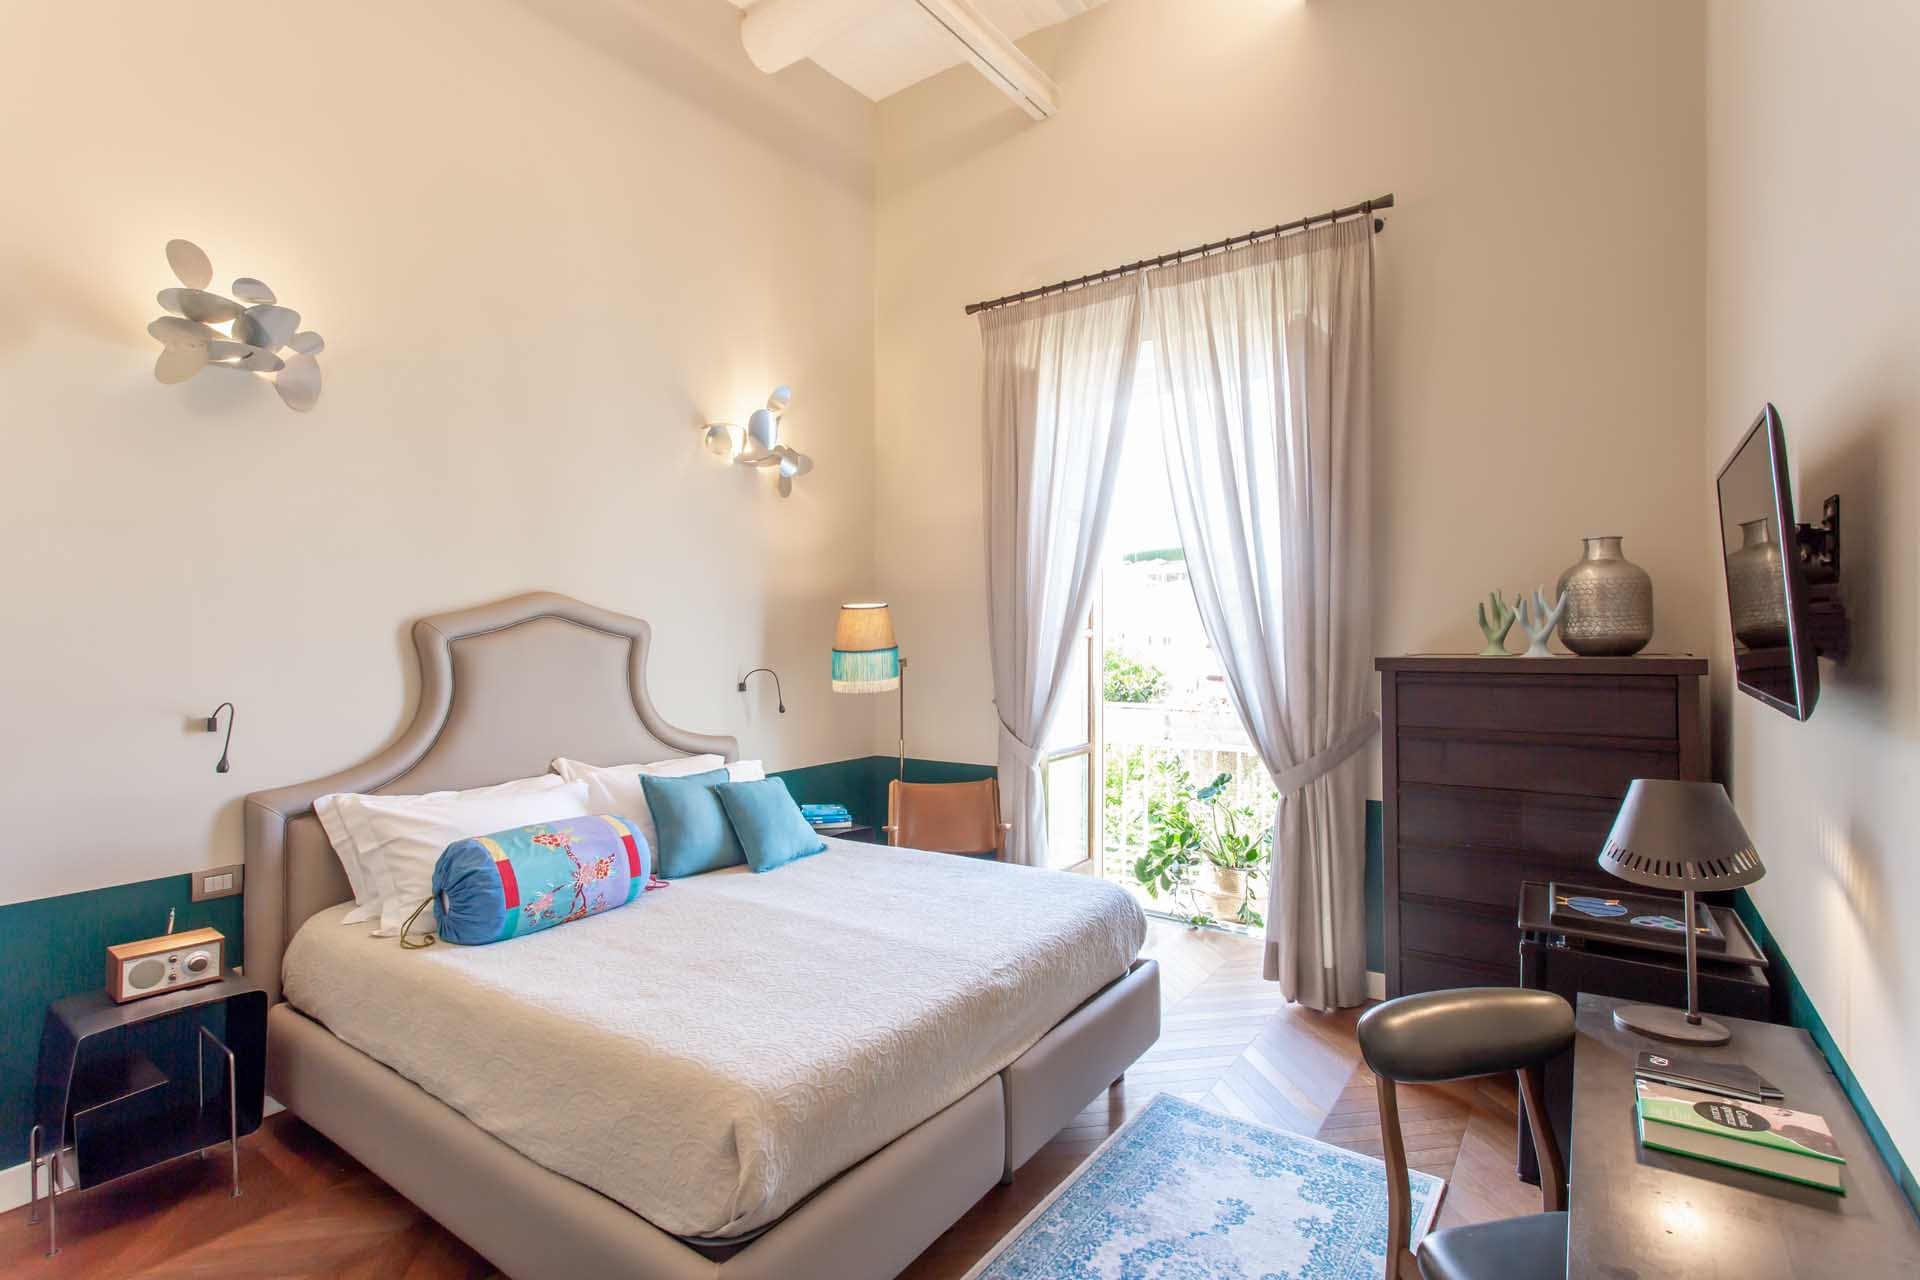 Accademia 39 Deluxe room with terrace